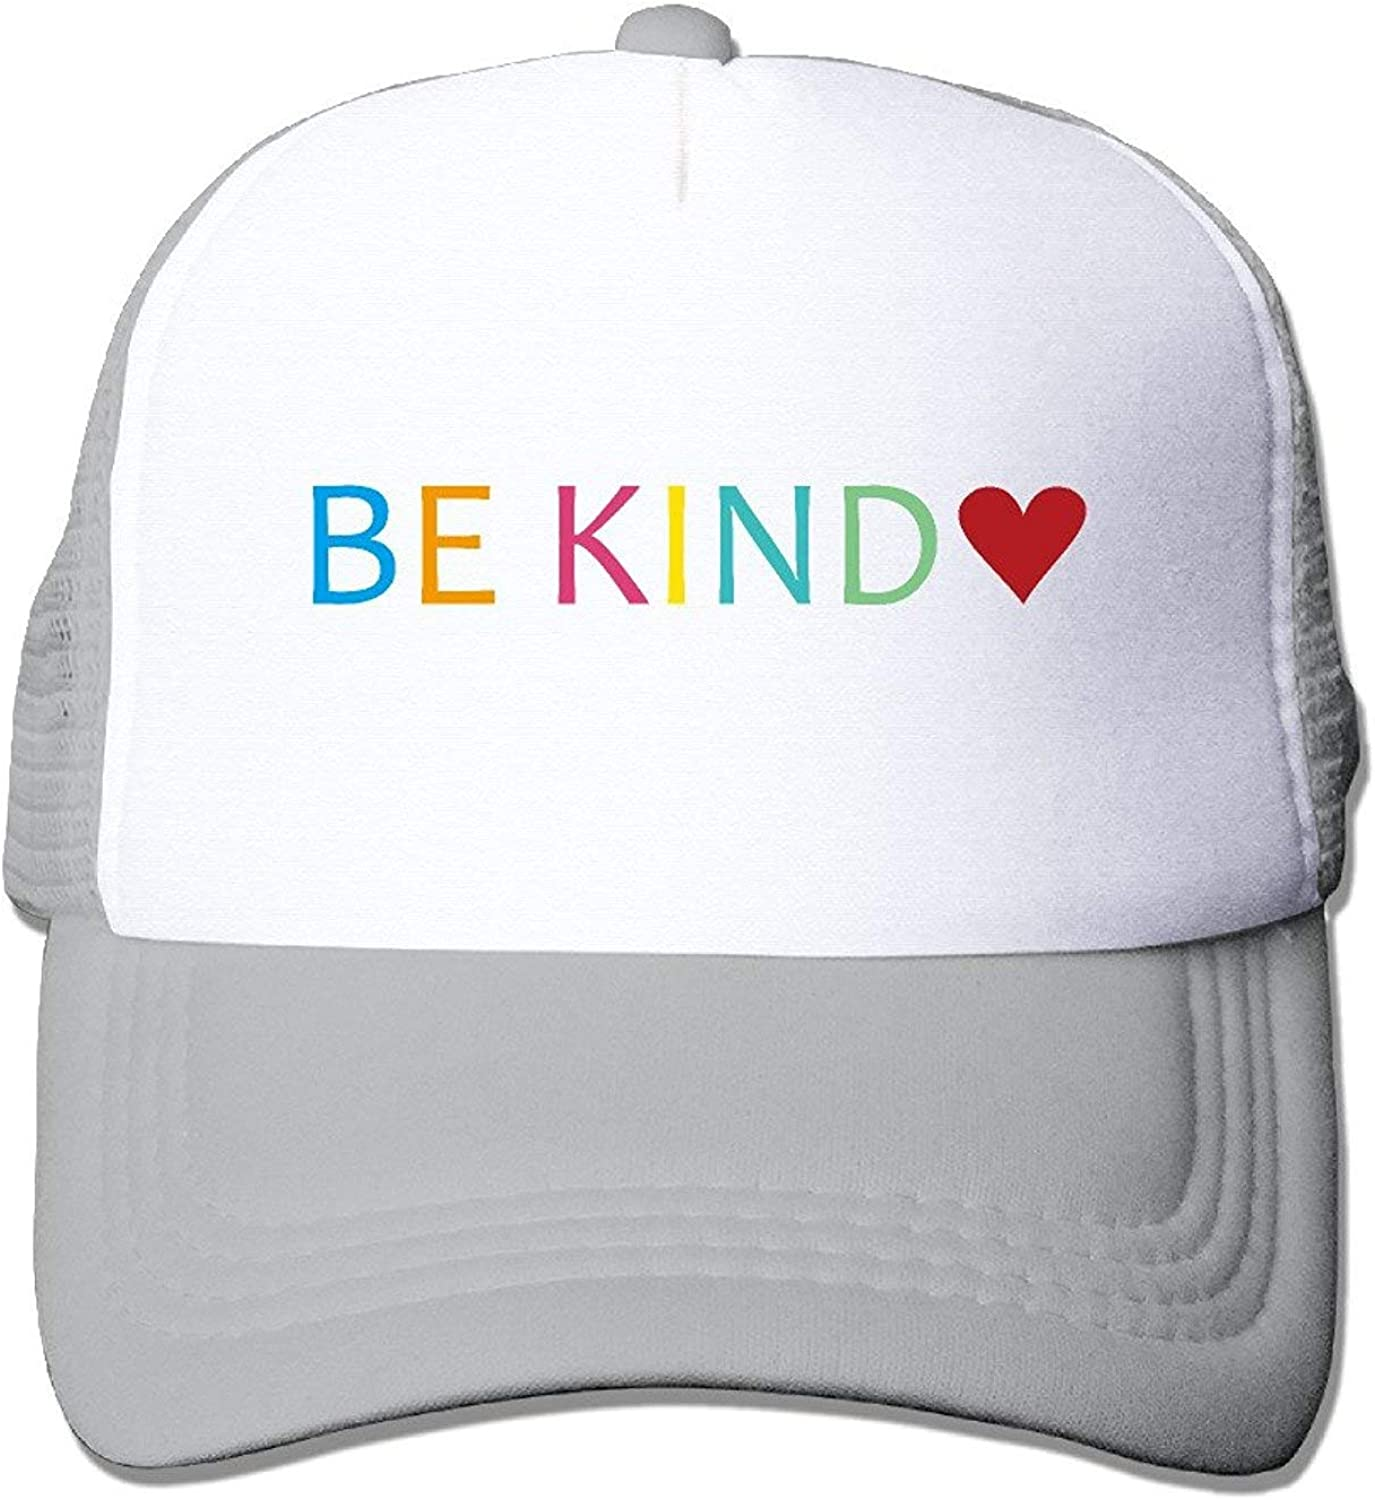 CONAWES Be Kind Heart Kindness Love Trucker Hat